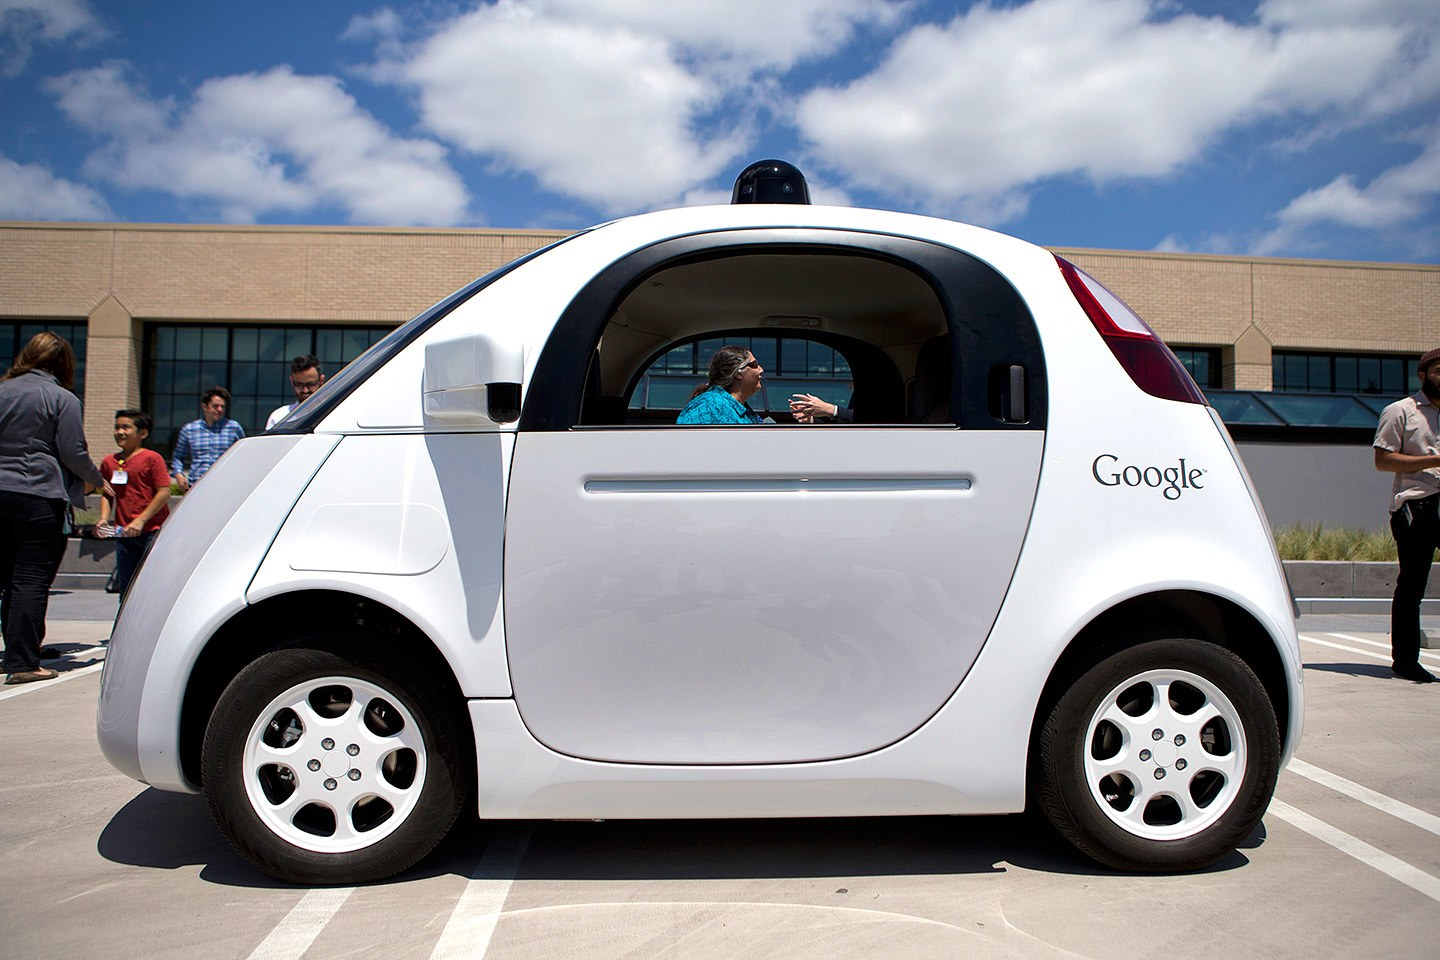 A picture of a white Google self-driving car. CFILC''s former Executive Director, Teresa, can be seen through the window of the car.